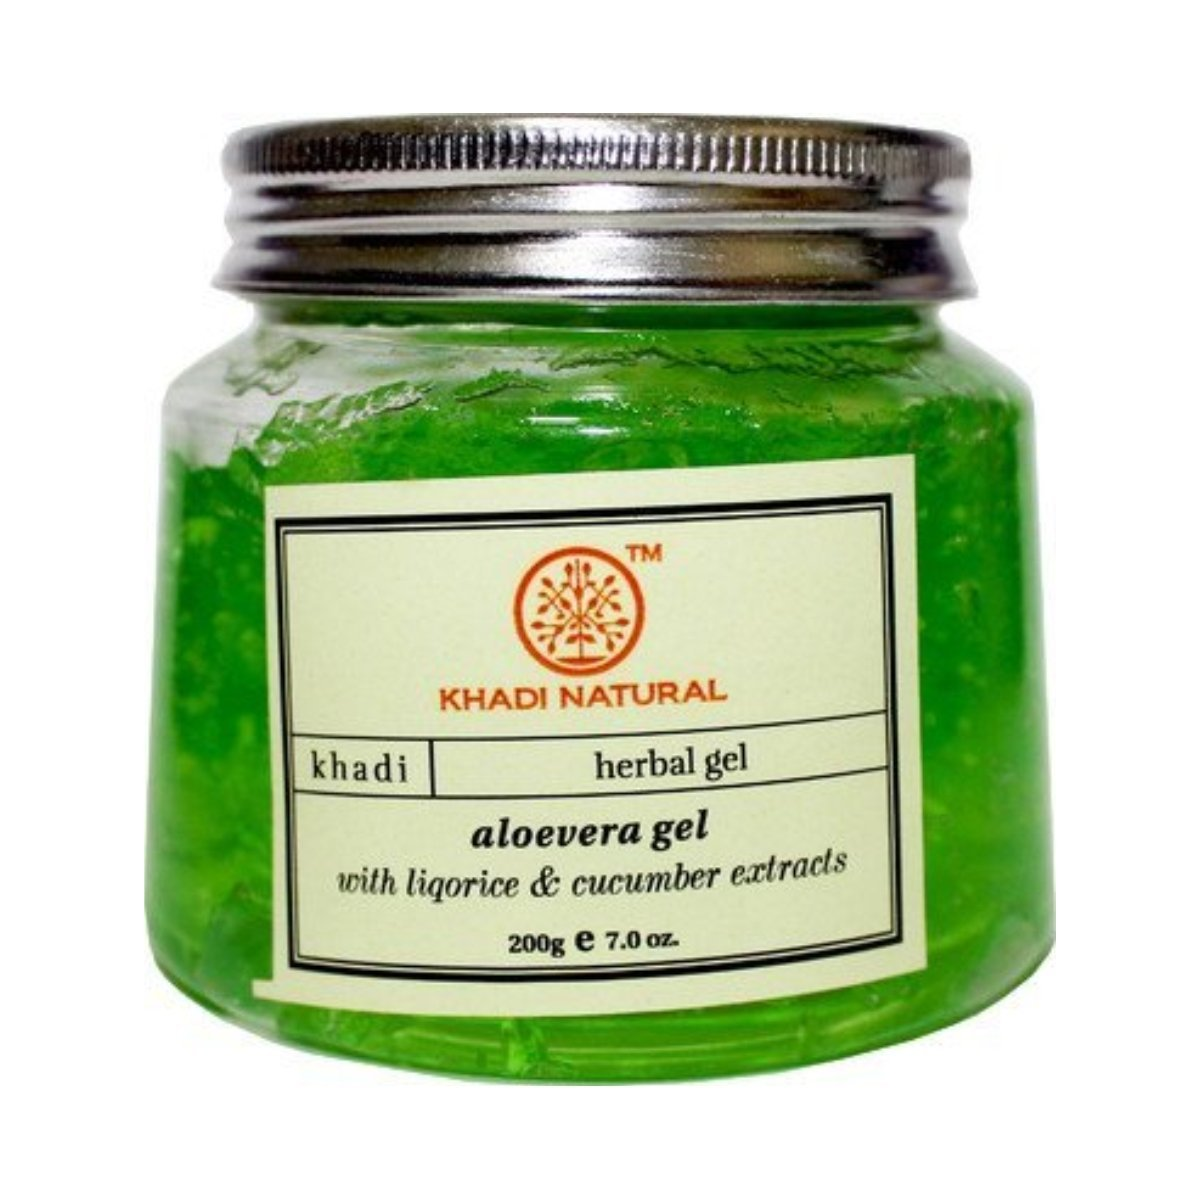 Khadi Natural Aloevera Gel Image